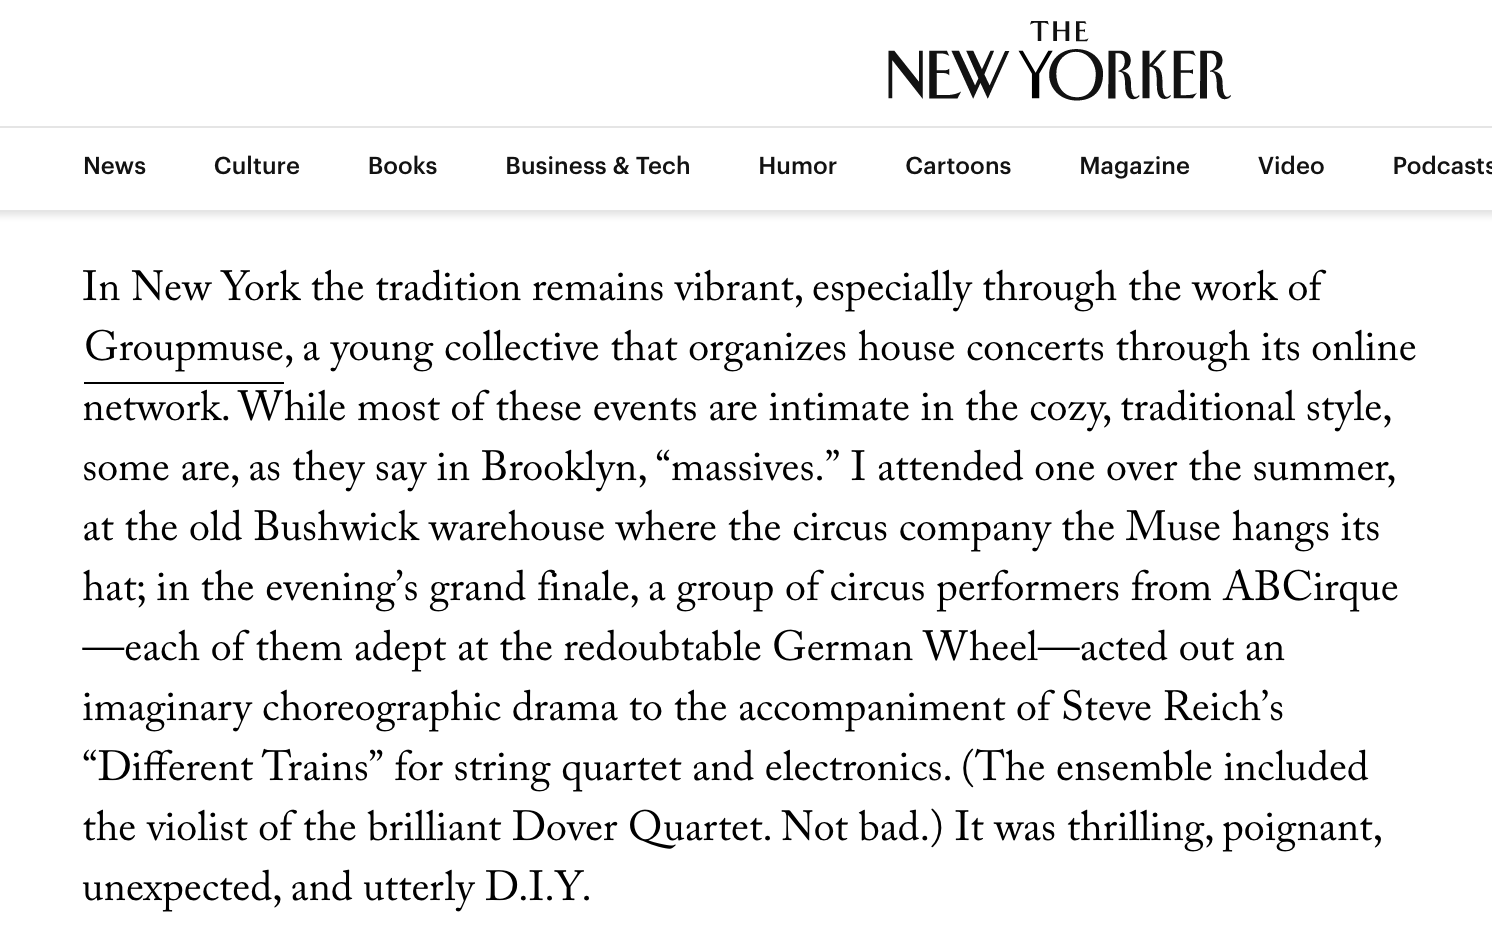 The New Yorker ABCirque